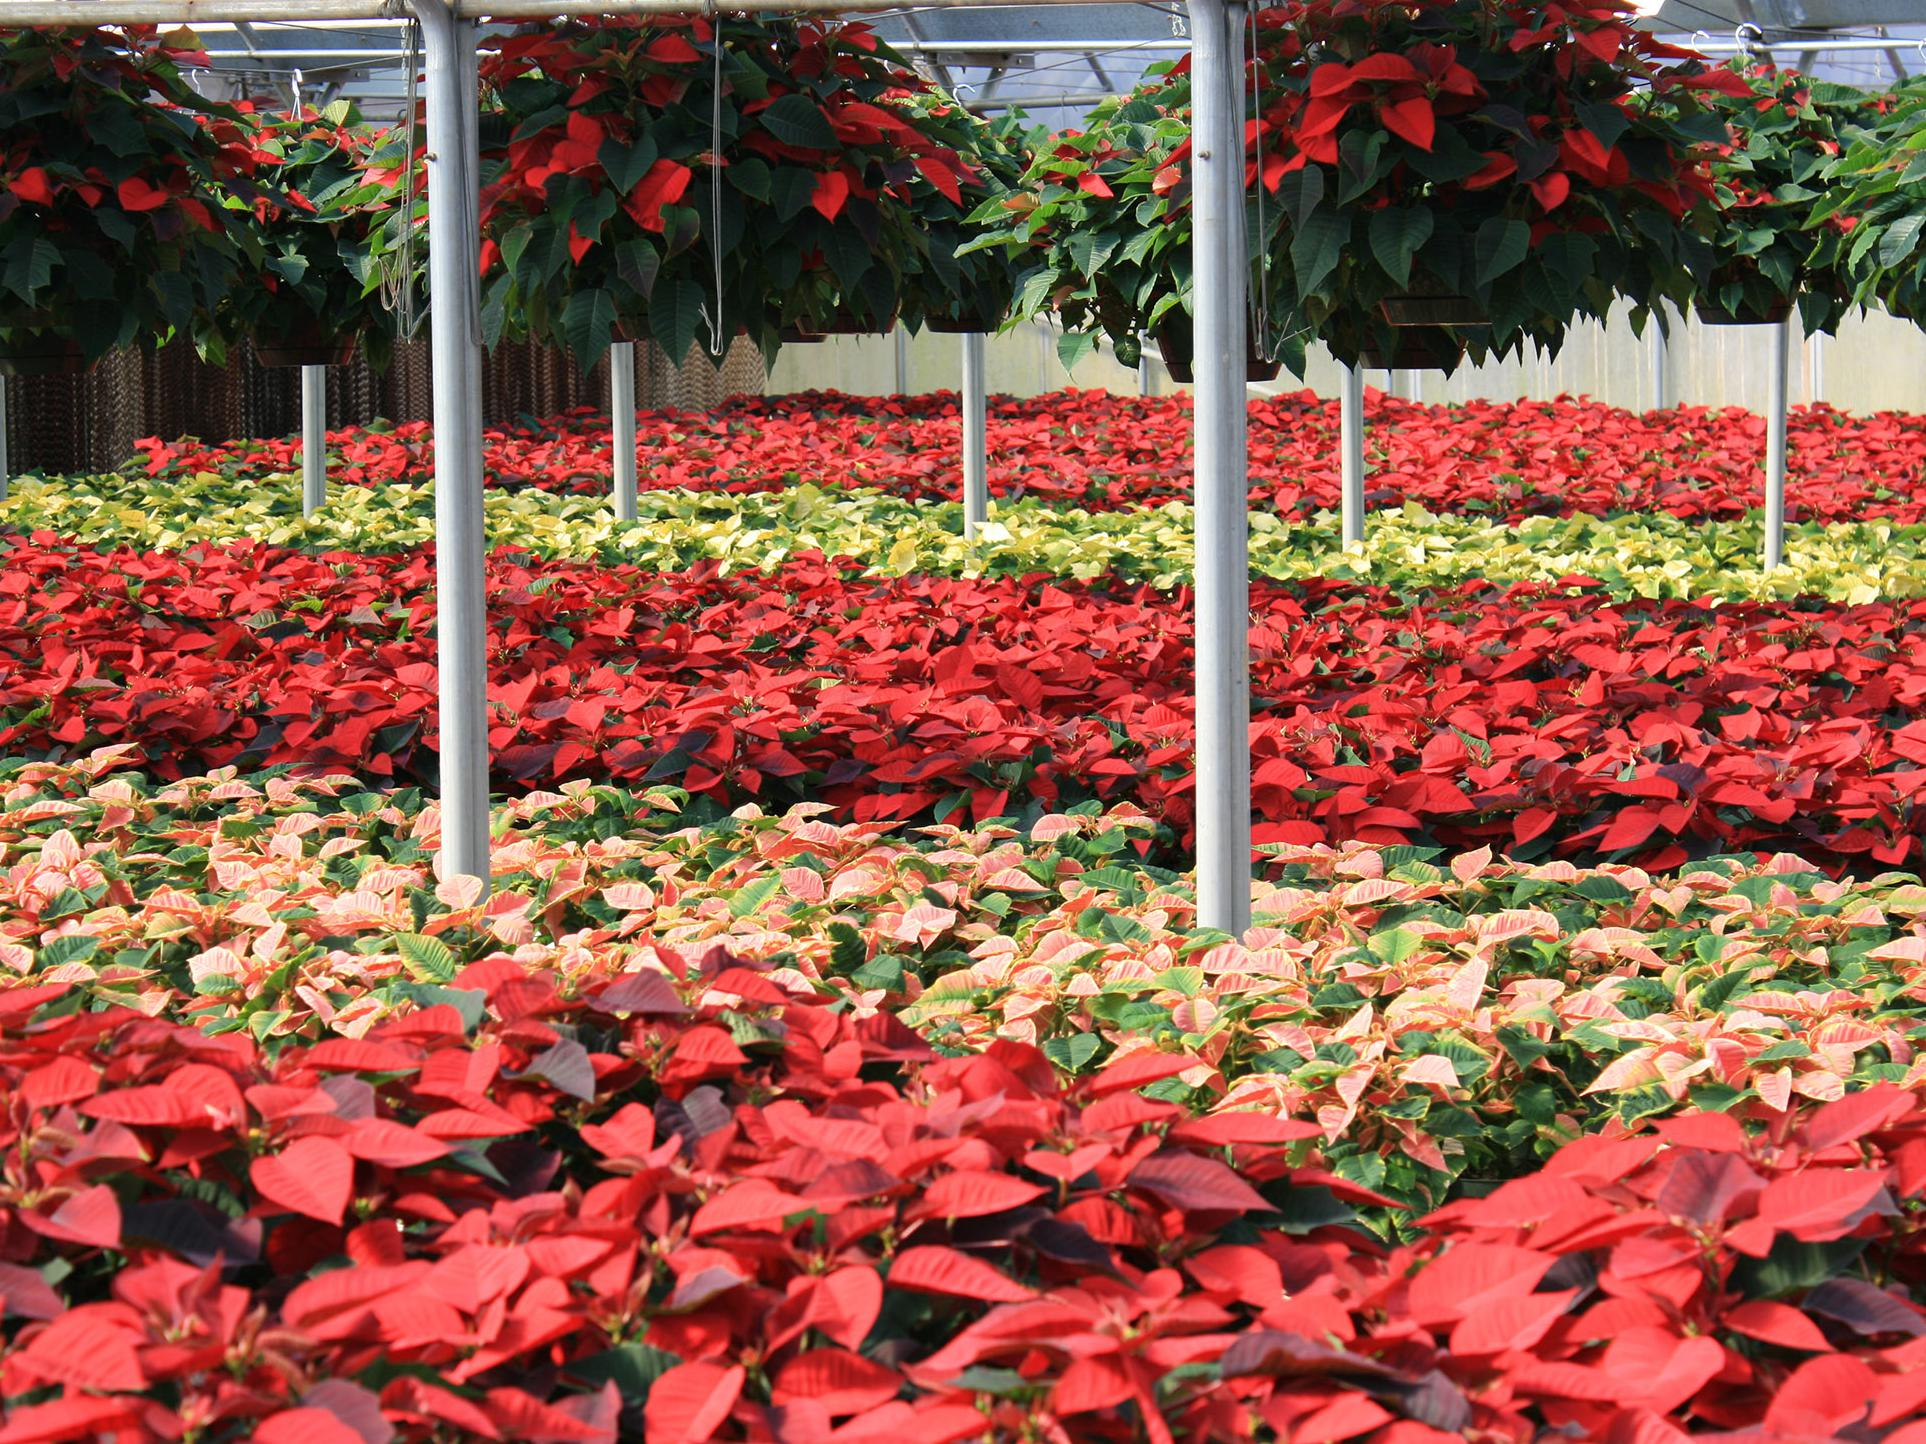 Nurseries have provided thousands of Christmas poinsettias in a variety of colors to decorate homes for the holidays. (Photo by MSU Extension/Gary Bachman)